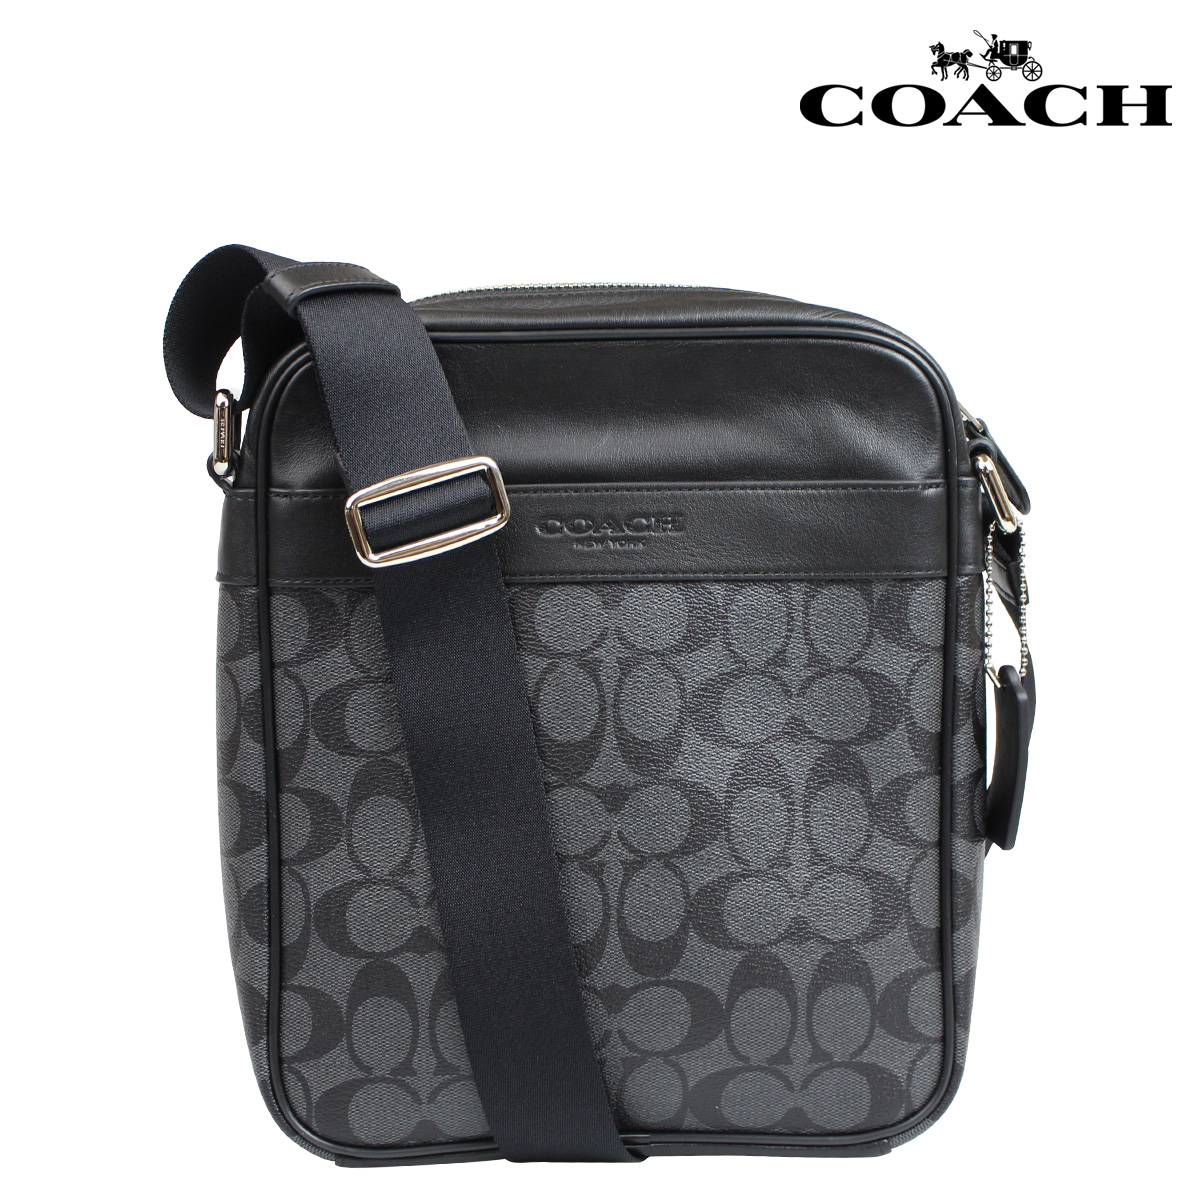 60a1b6e95 ... australia coach coach bag shoulder bags mens f71764 charcoal black  signature flight bag 697a6 fa64d